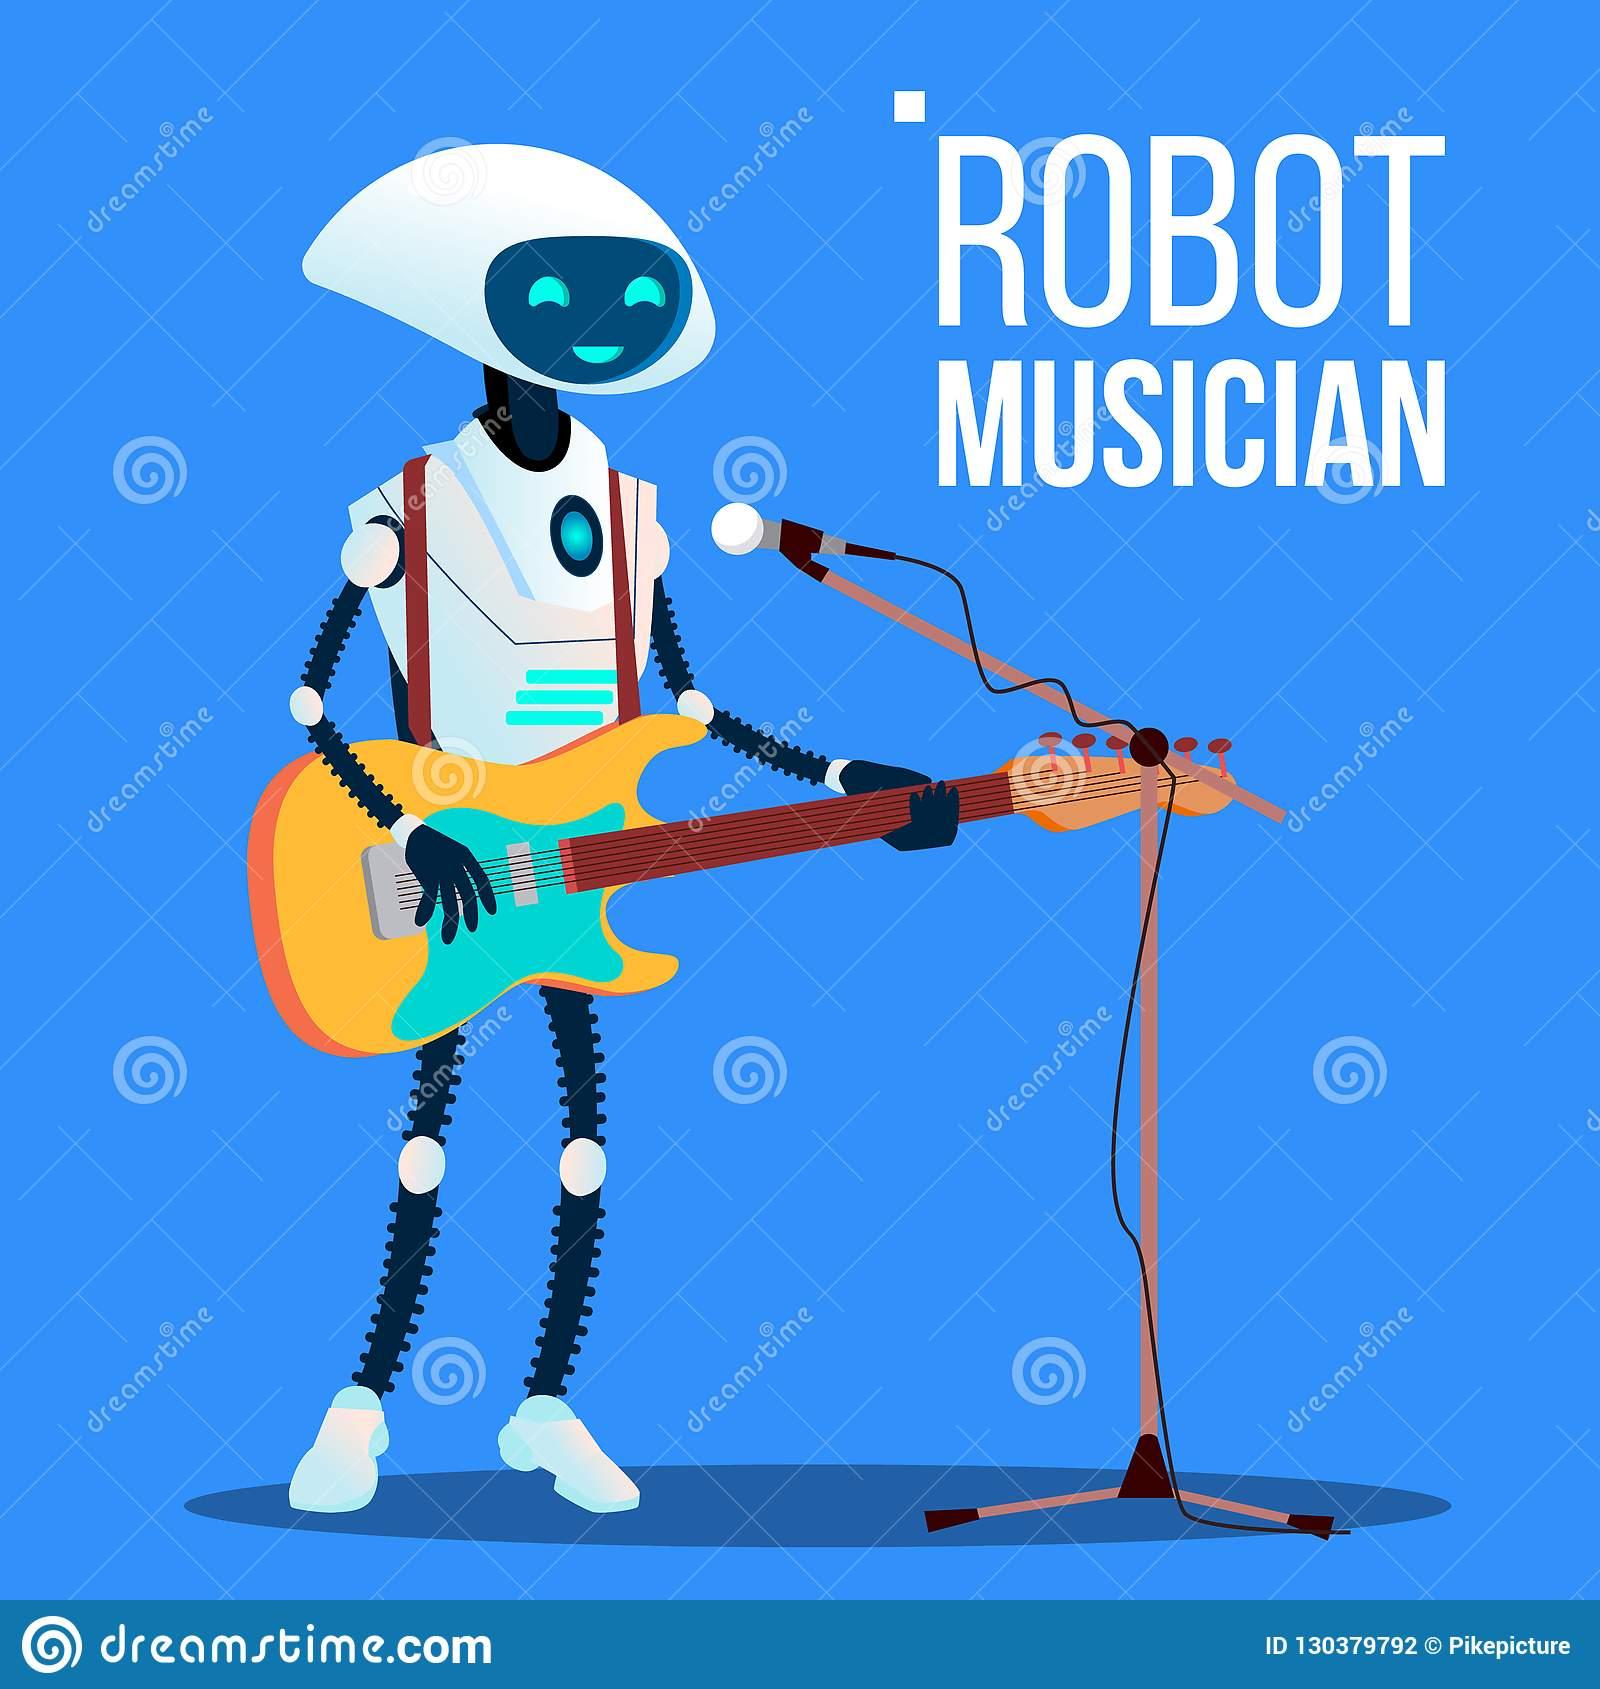 Robot Musician Playing Guitar And Singing Into Microphone Vector. Isolated Illustration